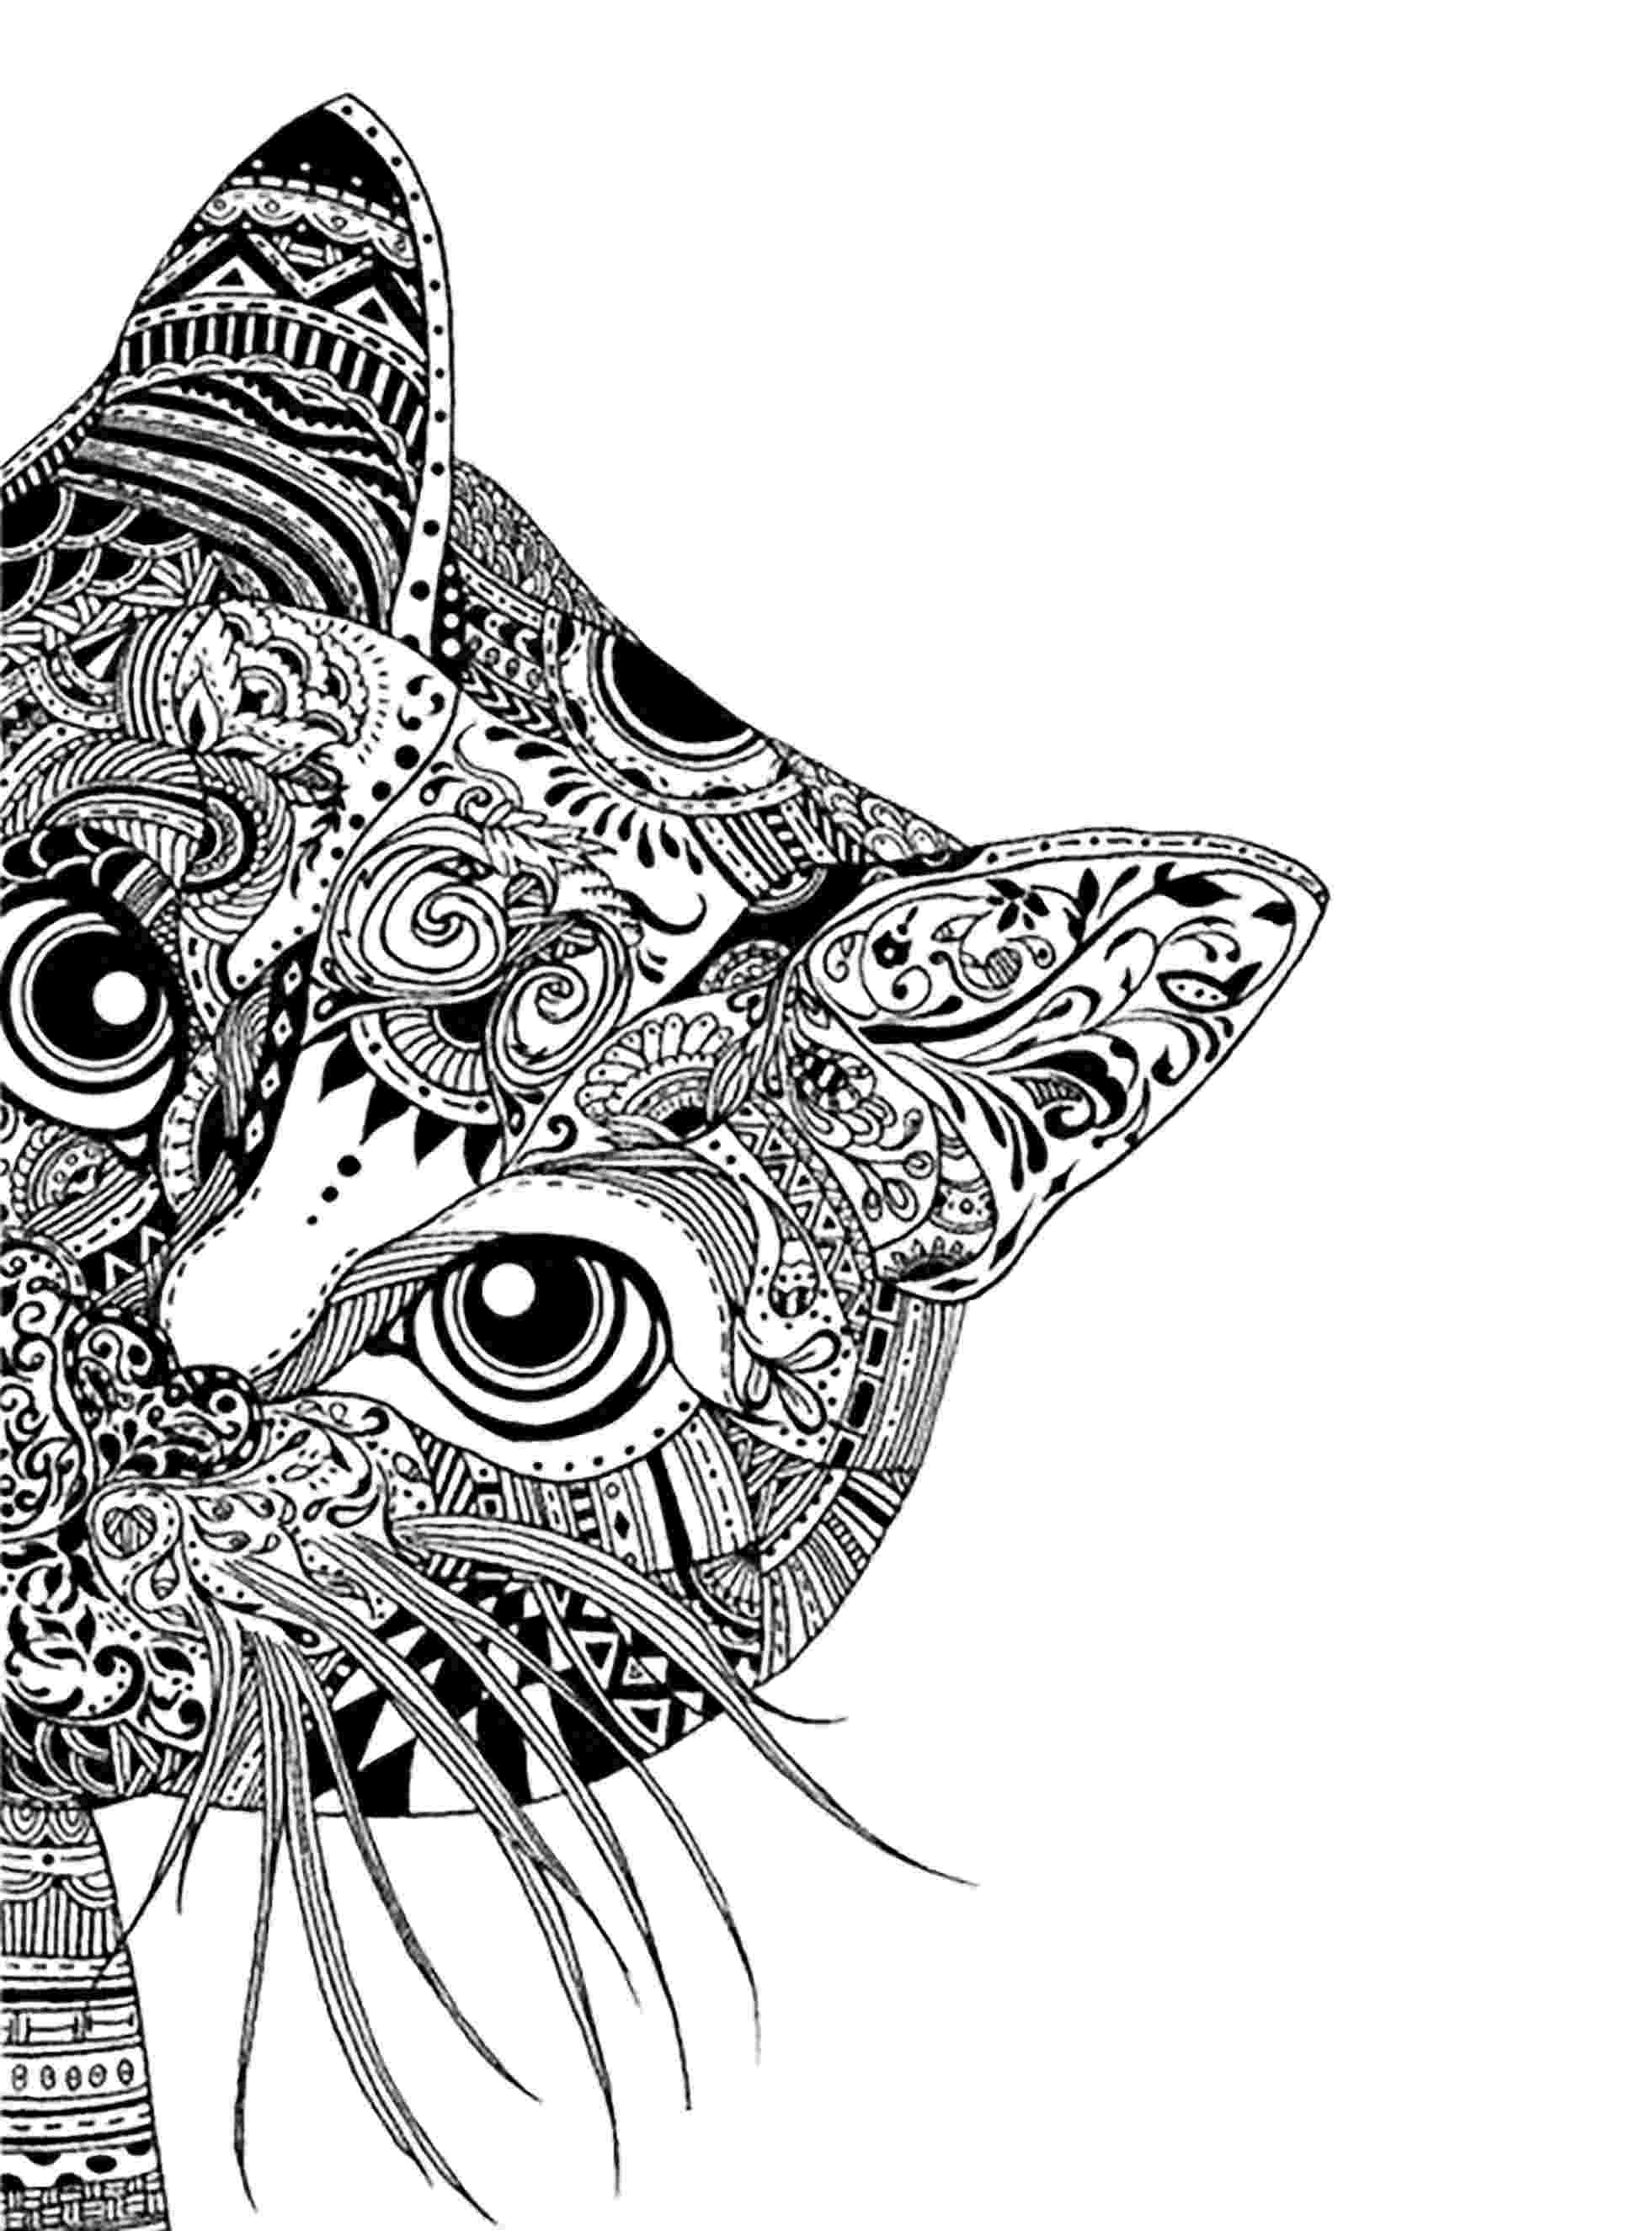 coloring pages online for adults adult coloring pages to print to download and print for free for online pages adults coloring